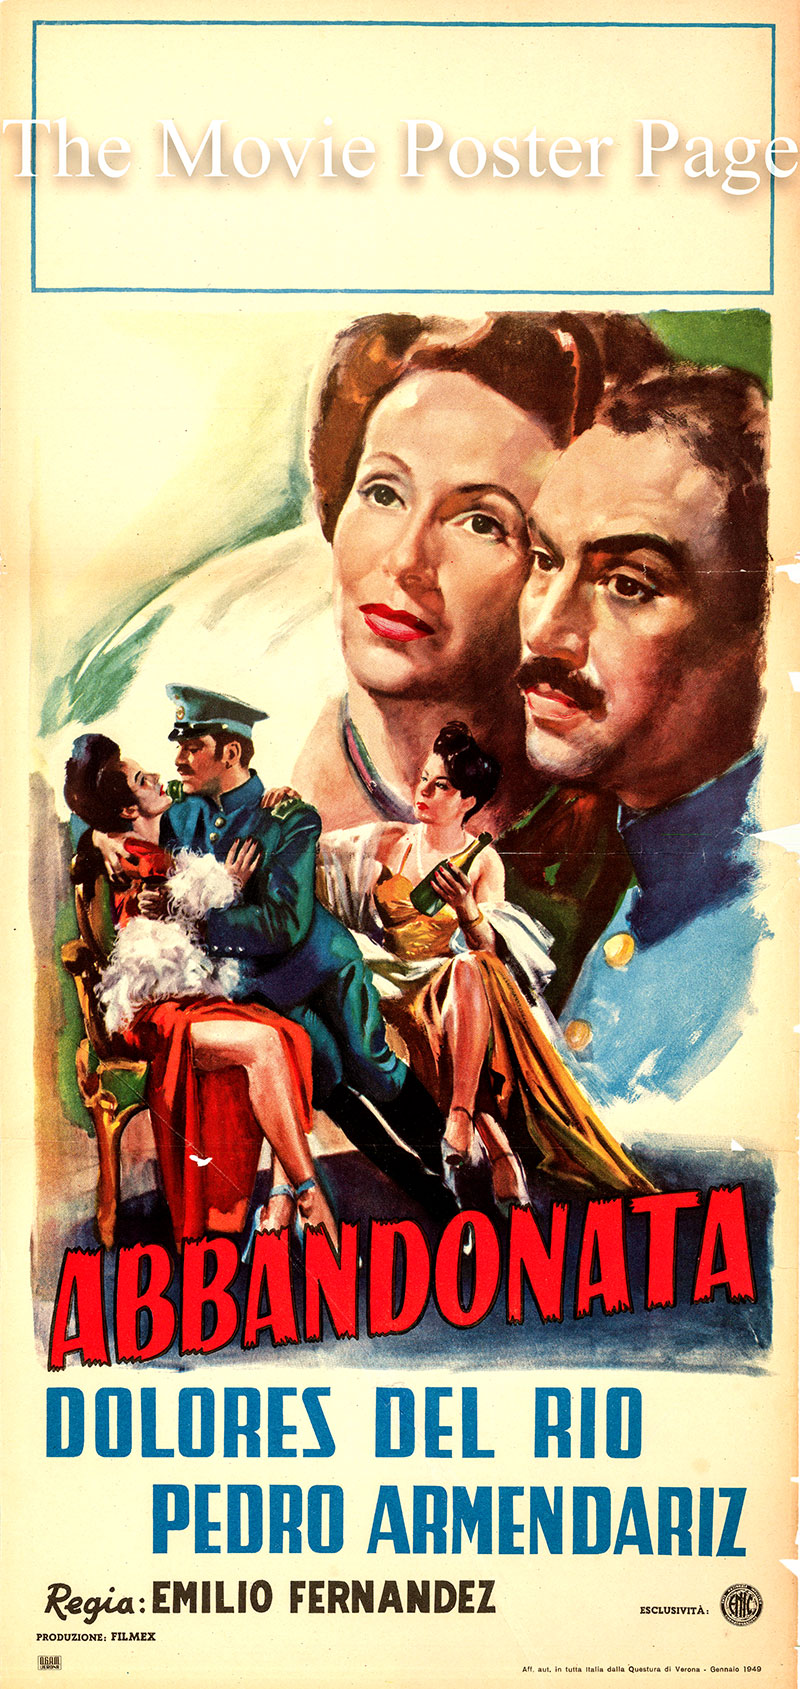 Pictured is an Italian locandina poster for the 1945 Emilio Fernández film The Abandoned starring Dolores del Rio as Margarita Pérez.